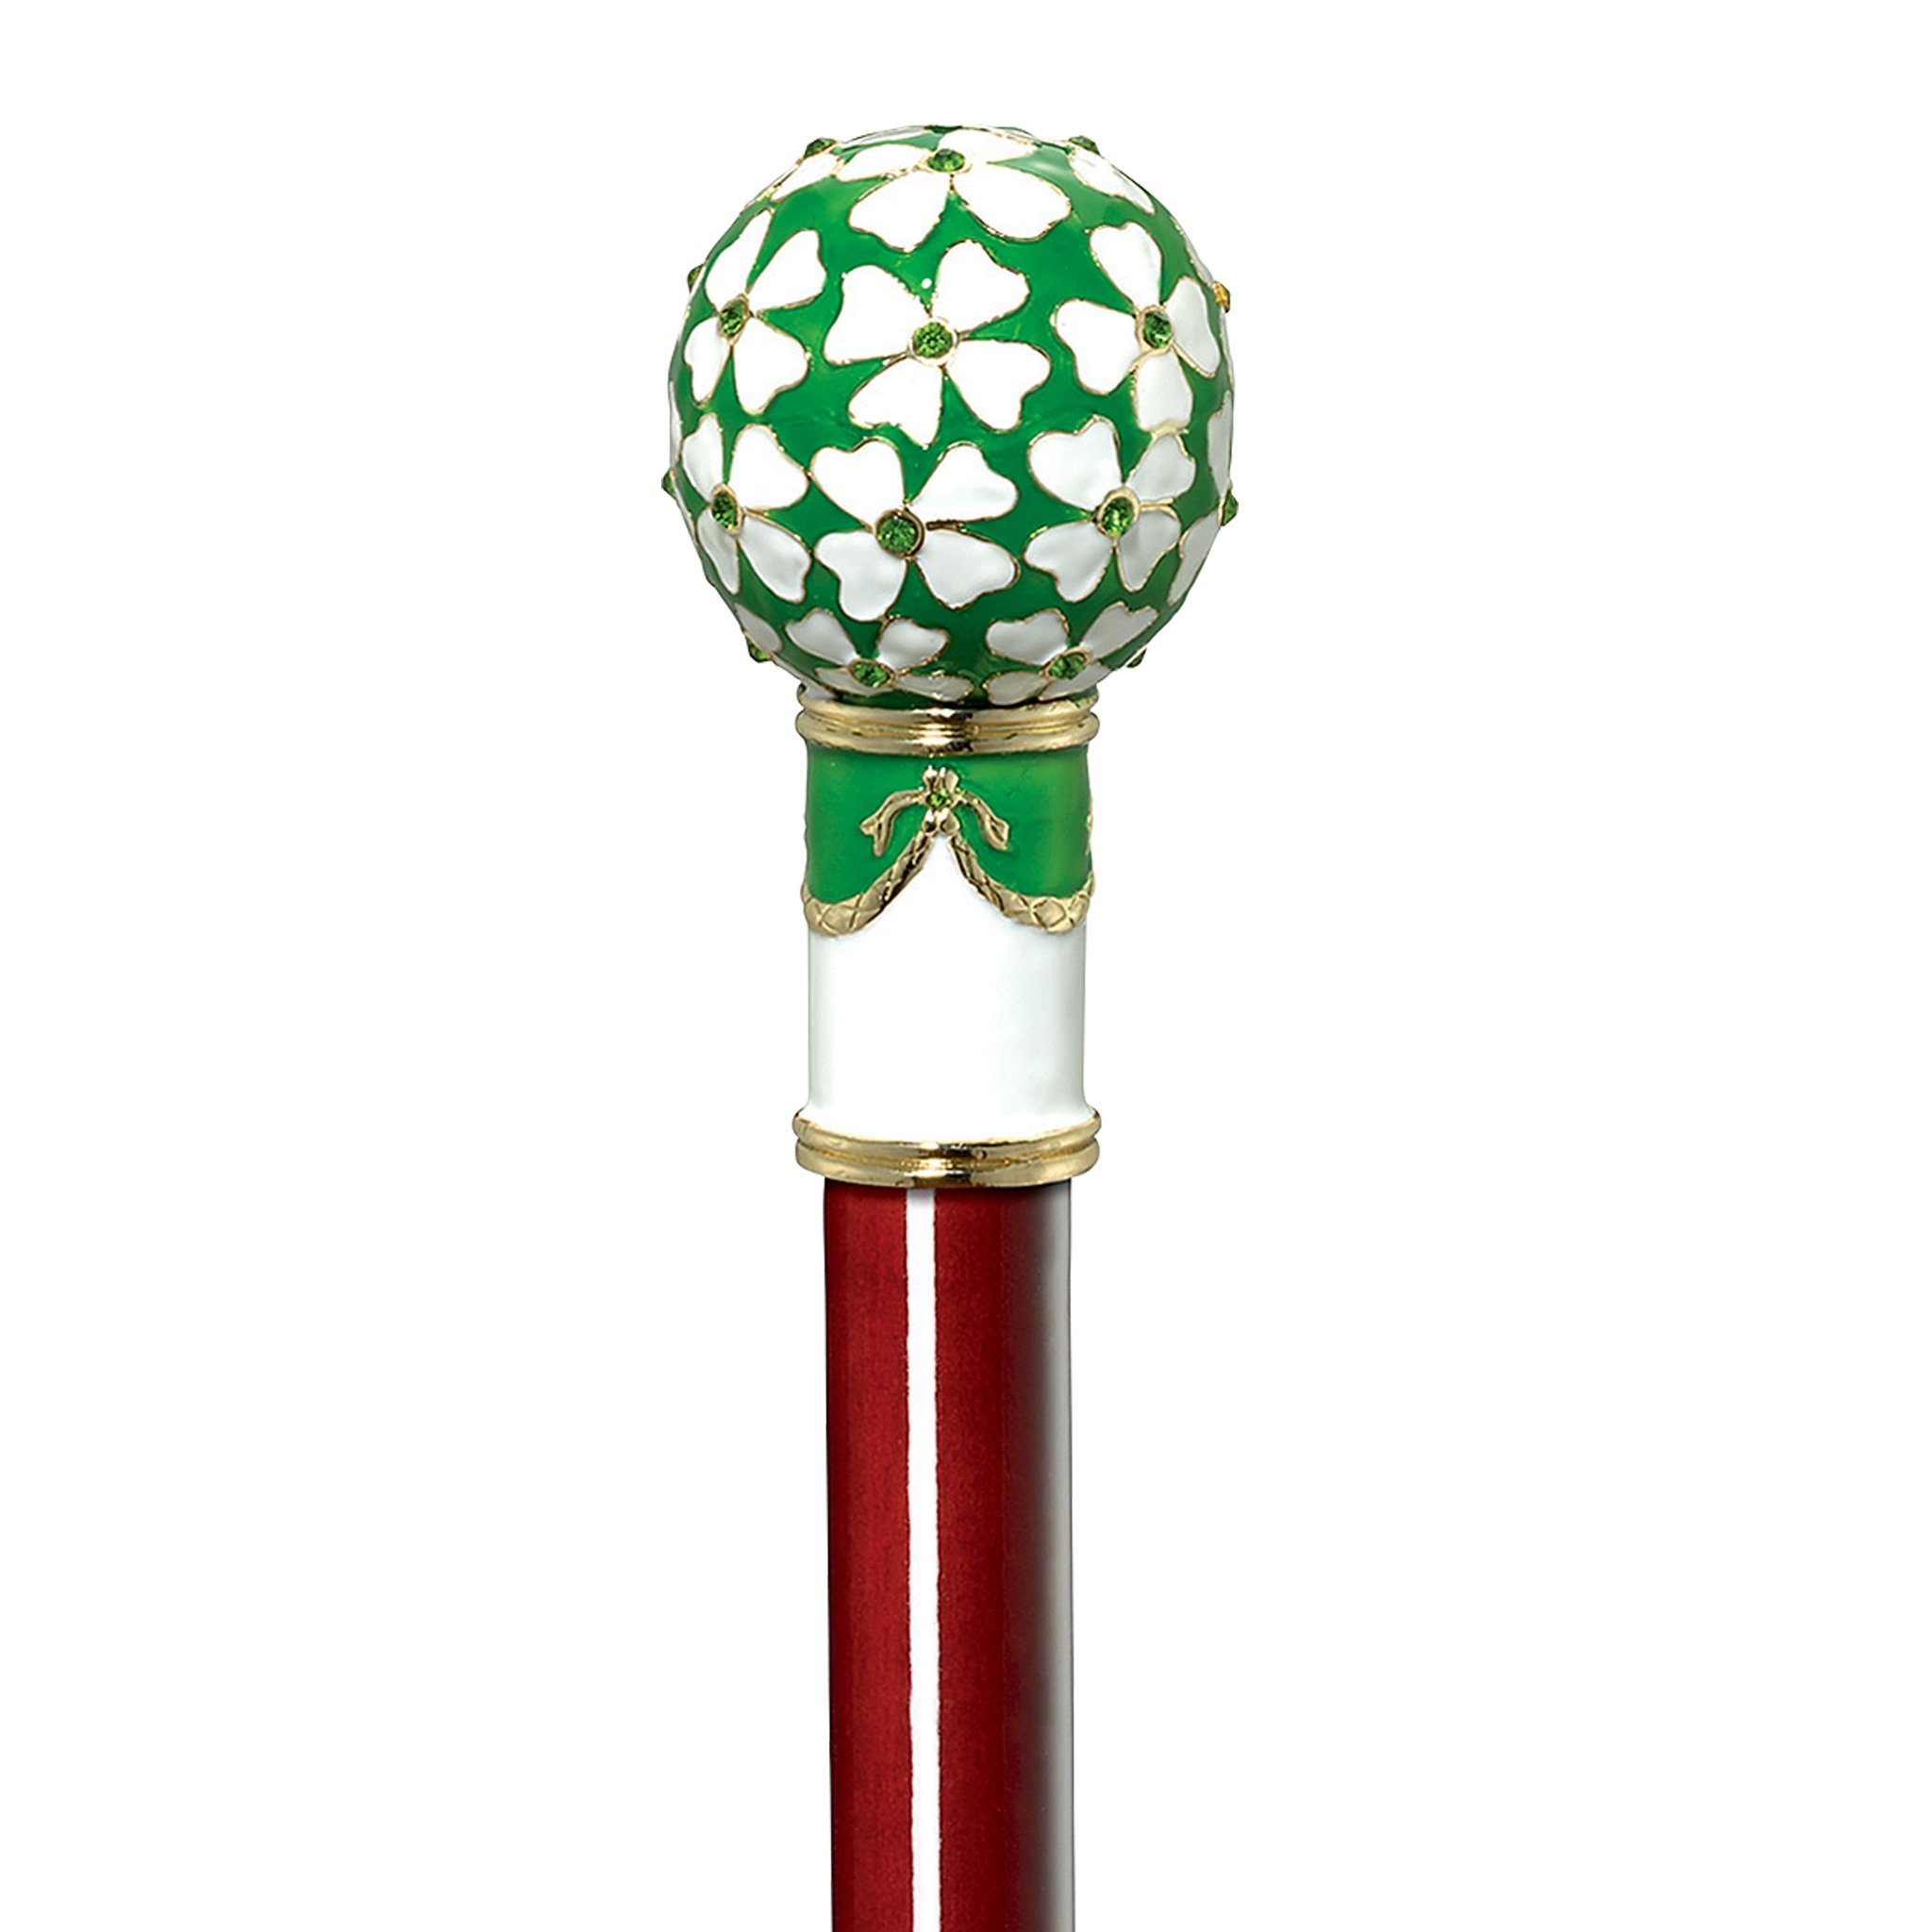 Design Toscano Imperial Collection Romanov Style Premium Enameled Four Leaf Clover Walking Stick, Full Color